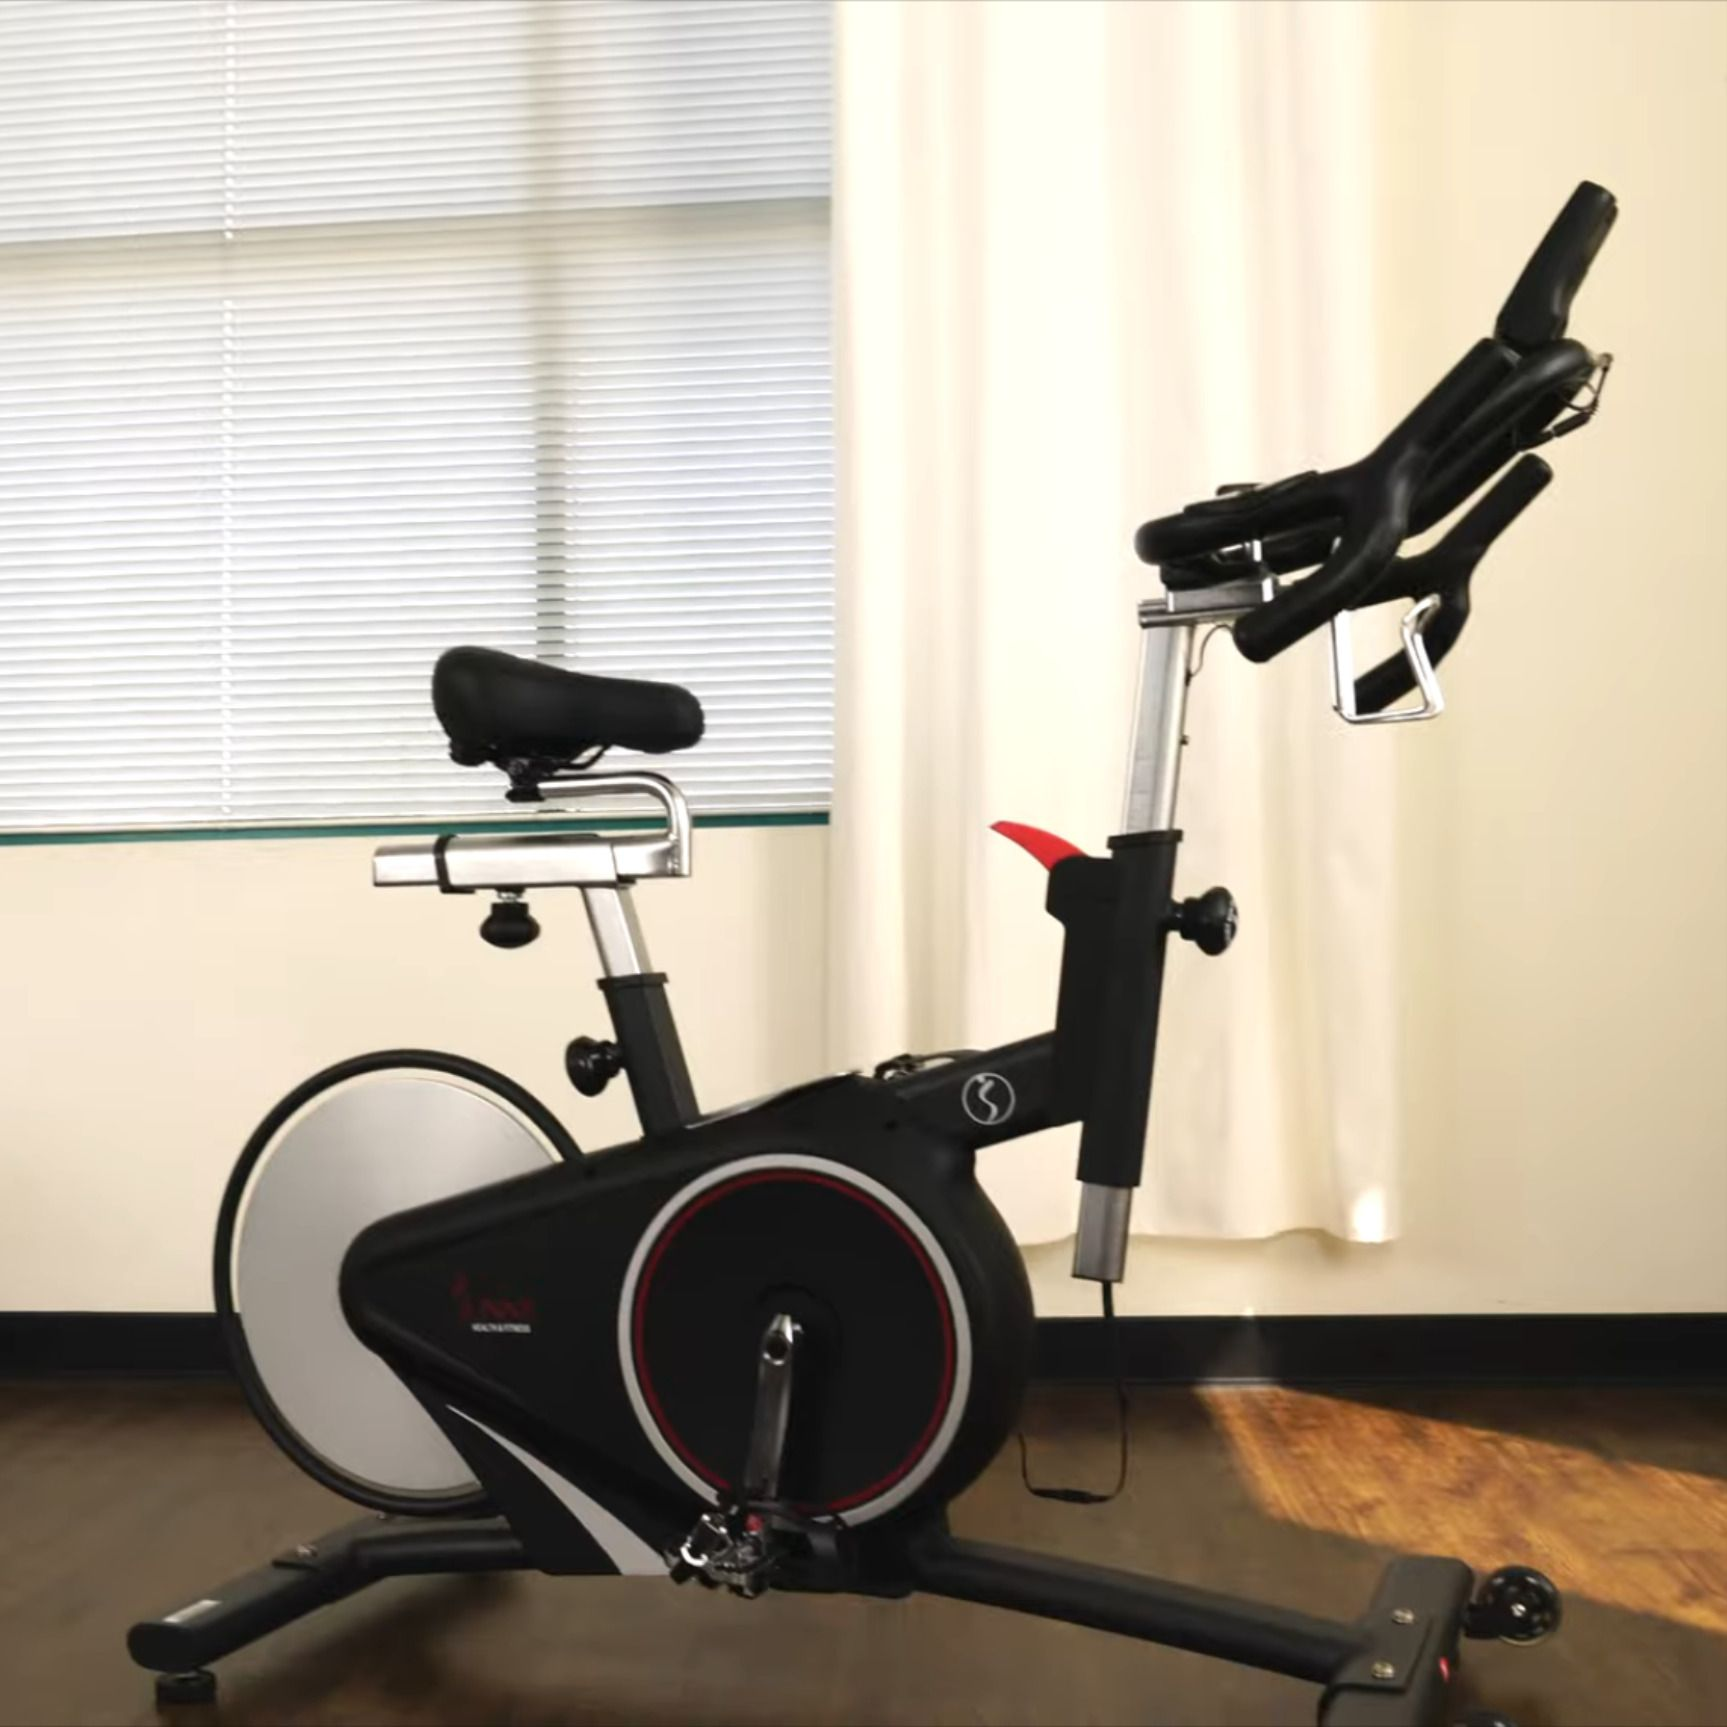 Star Trac Spinner Pro Review Asuna 5100 Recumbent Bike For Short